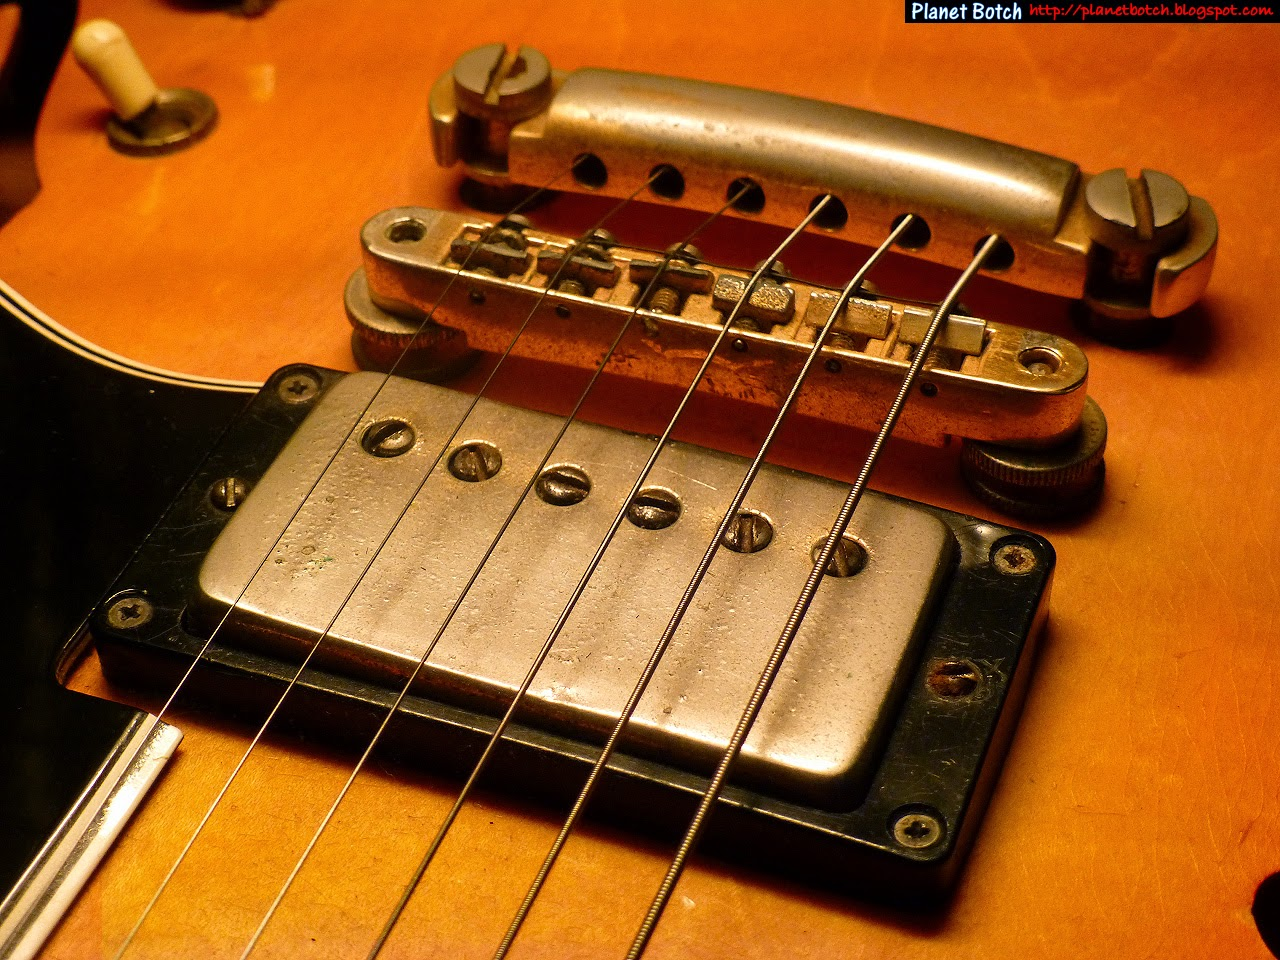 The Seymour Duncan JB Humbucker | Planet Botch